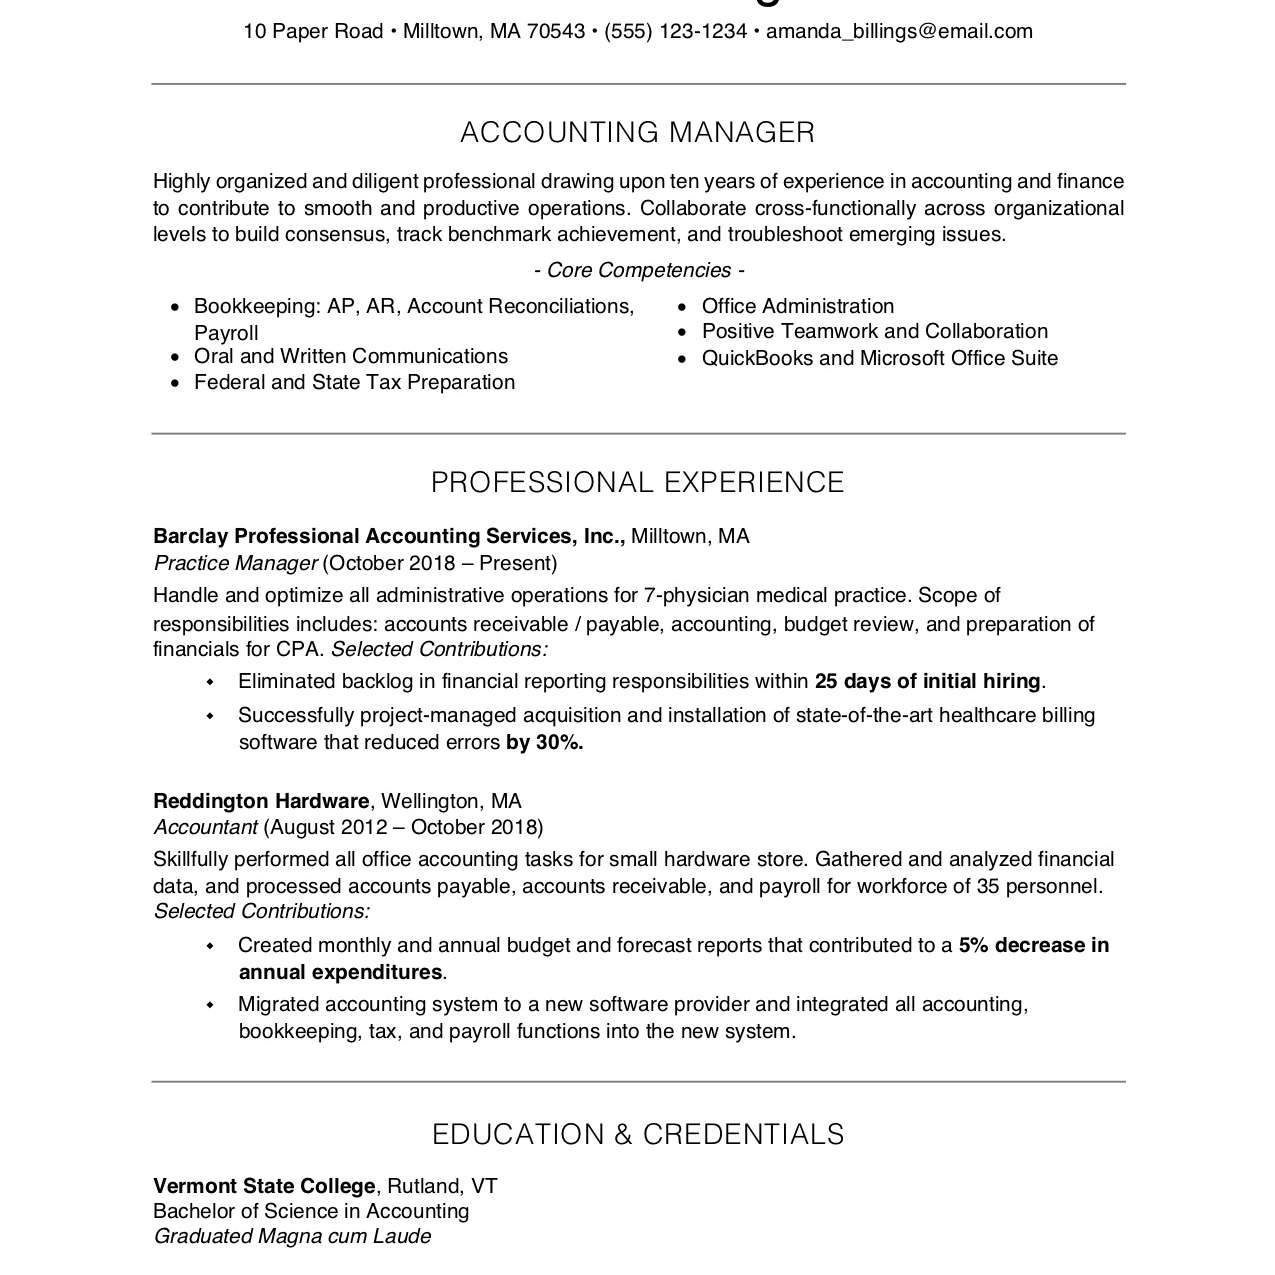 free professional resume examples and writing tips job template 2063596res1 headline for Resume Professional Job Resume Template